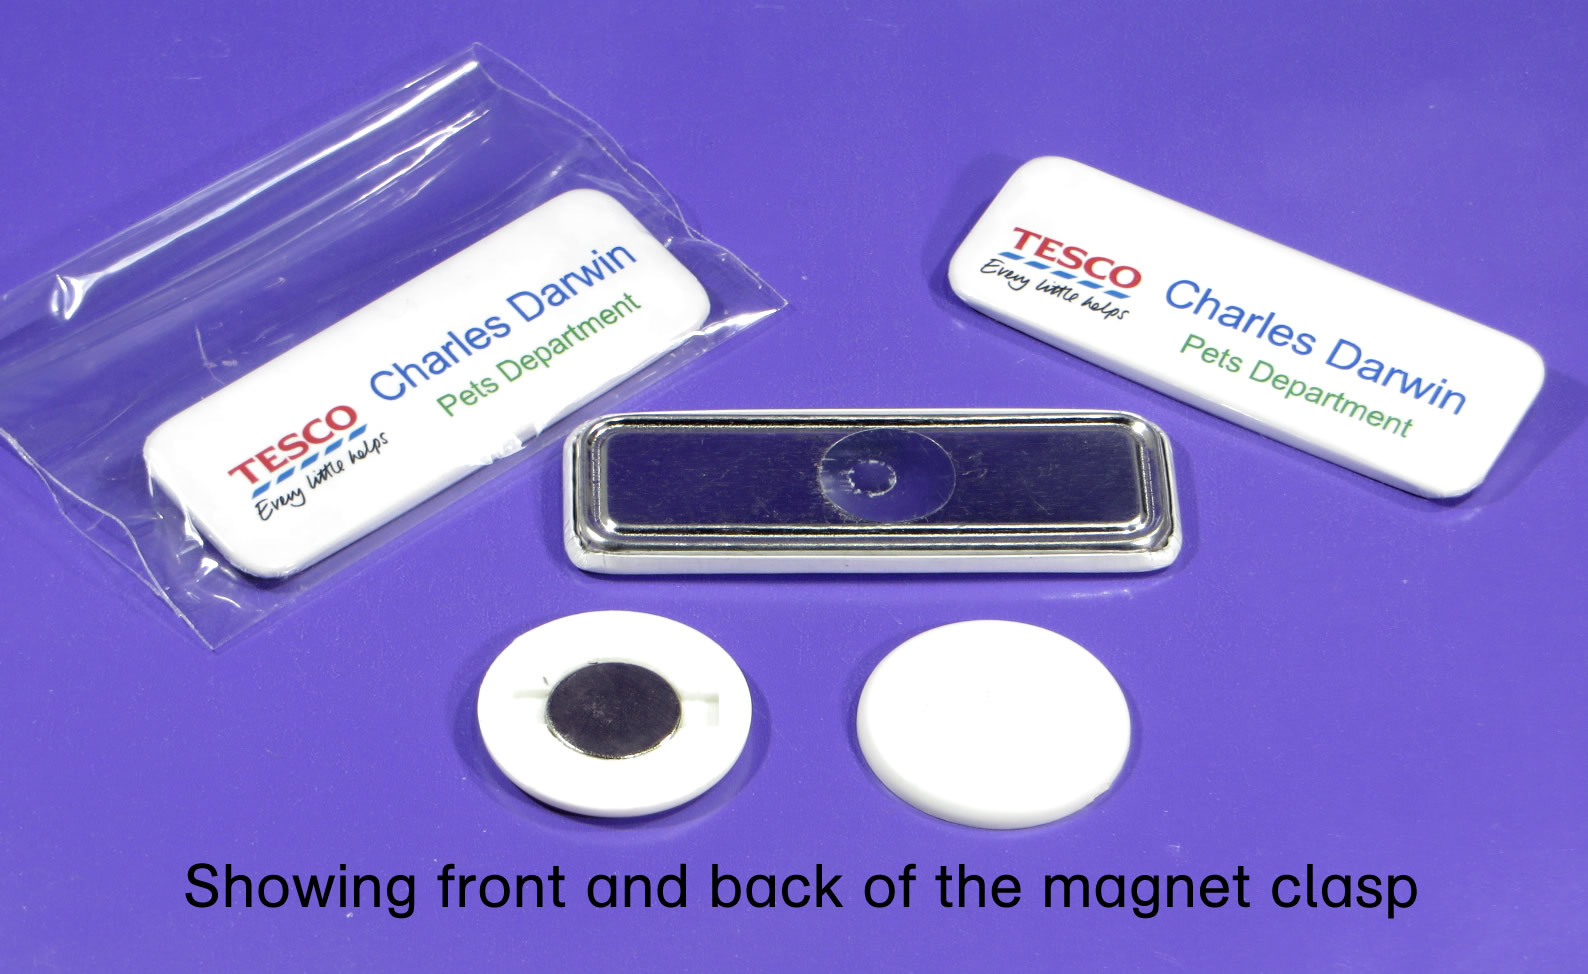 showing the magnet name badge with clasp view